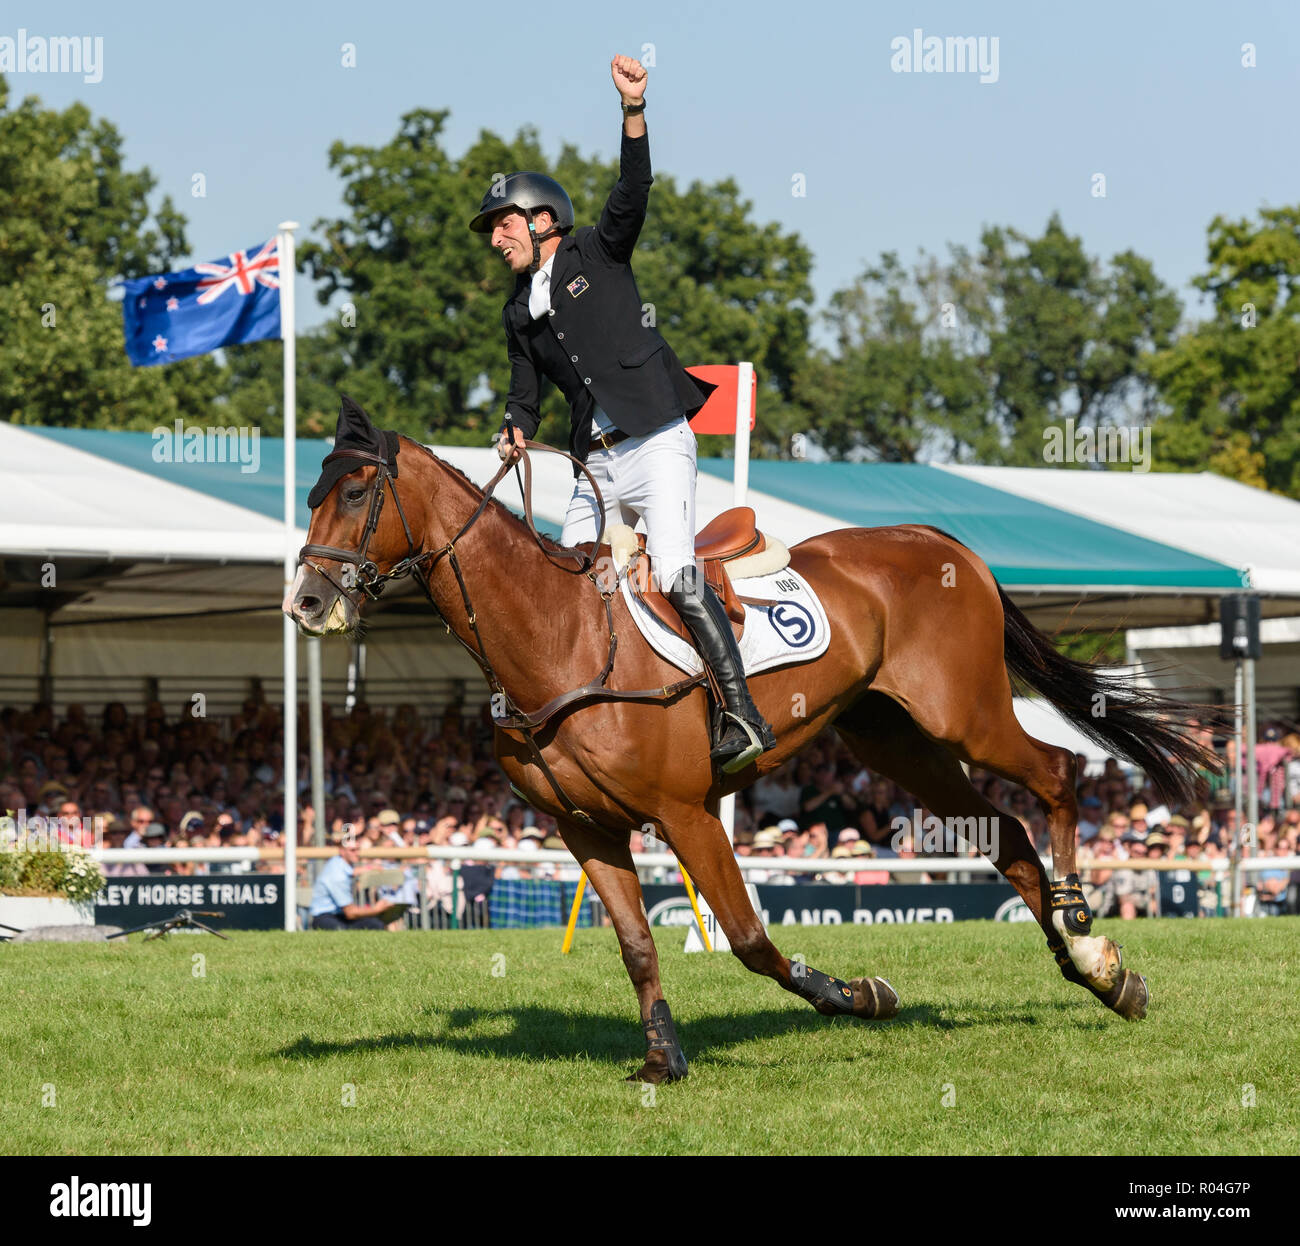 Tim Price and RINGWOOD SKY BOY during the showjumping  phase of the Land Rover Burghley Horse Trials, 2nd September 2018. Stock Photo